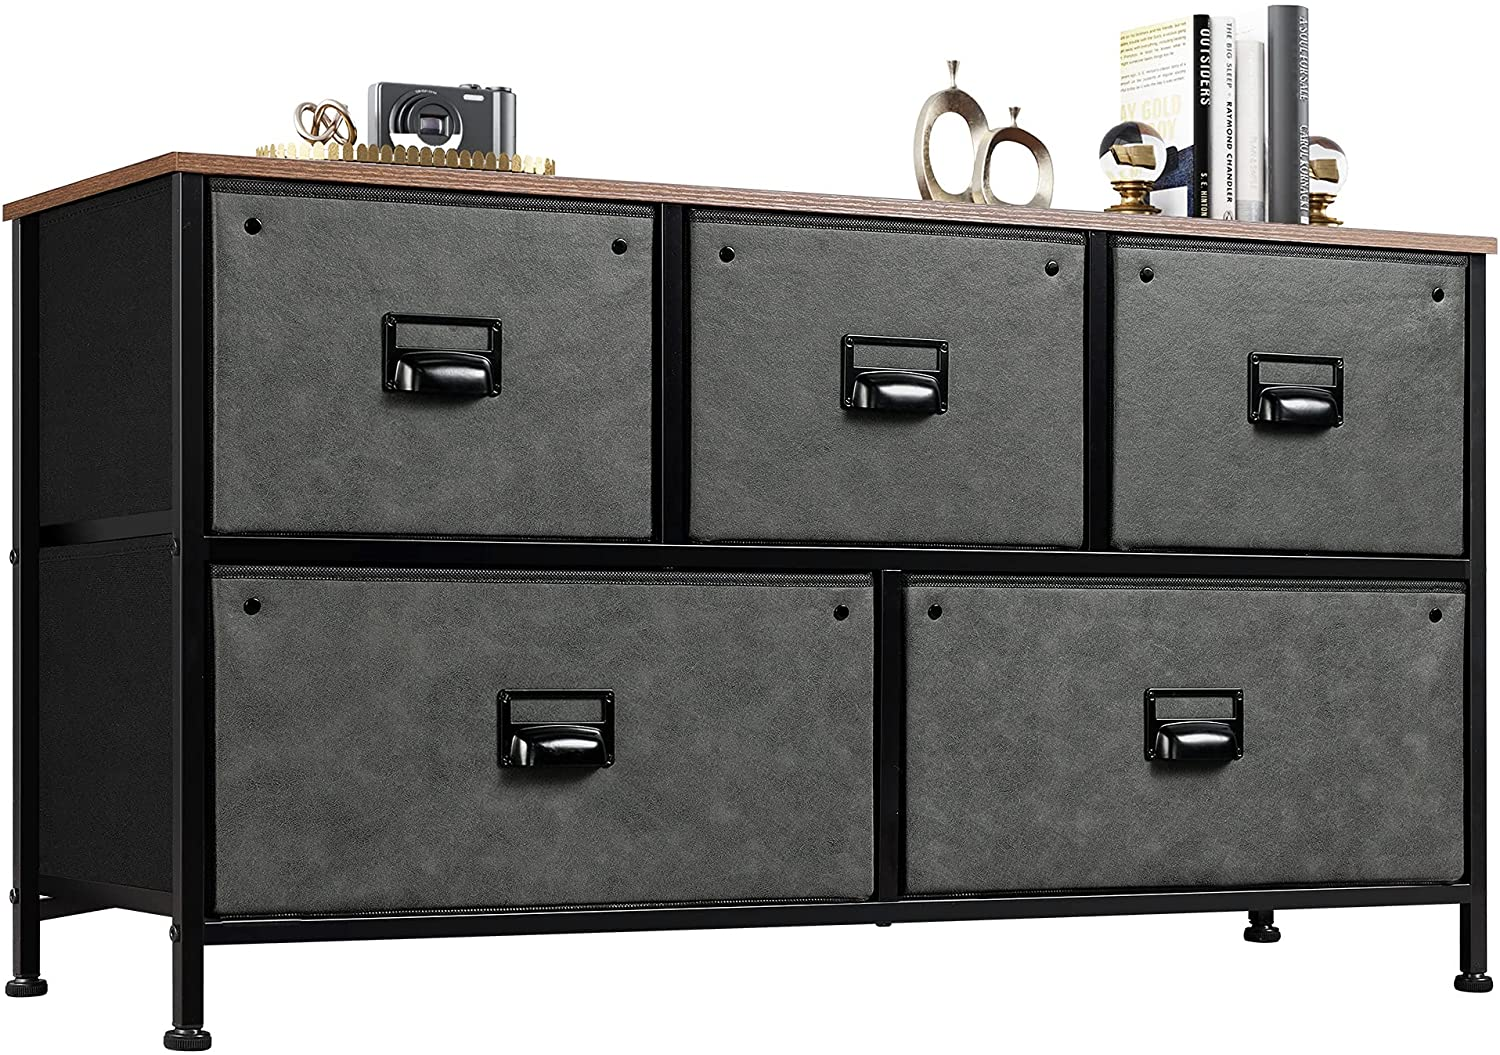 WLIVE Dresser with 5 Drawers, Fabric Storage Tower, Industrial Dresser for Bedroom, Hallway, Entryway, Closets, Sturdy Steel Frame, Wood Top, Easy Pull Handle, Black